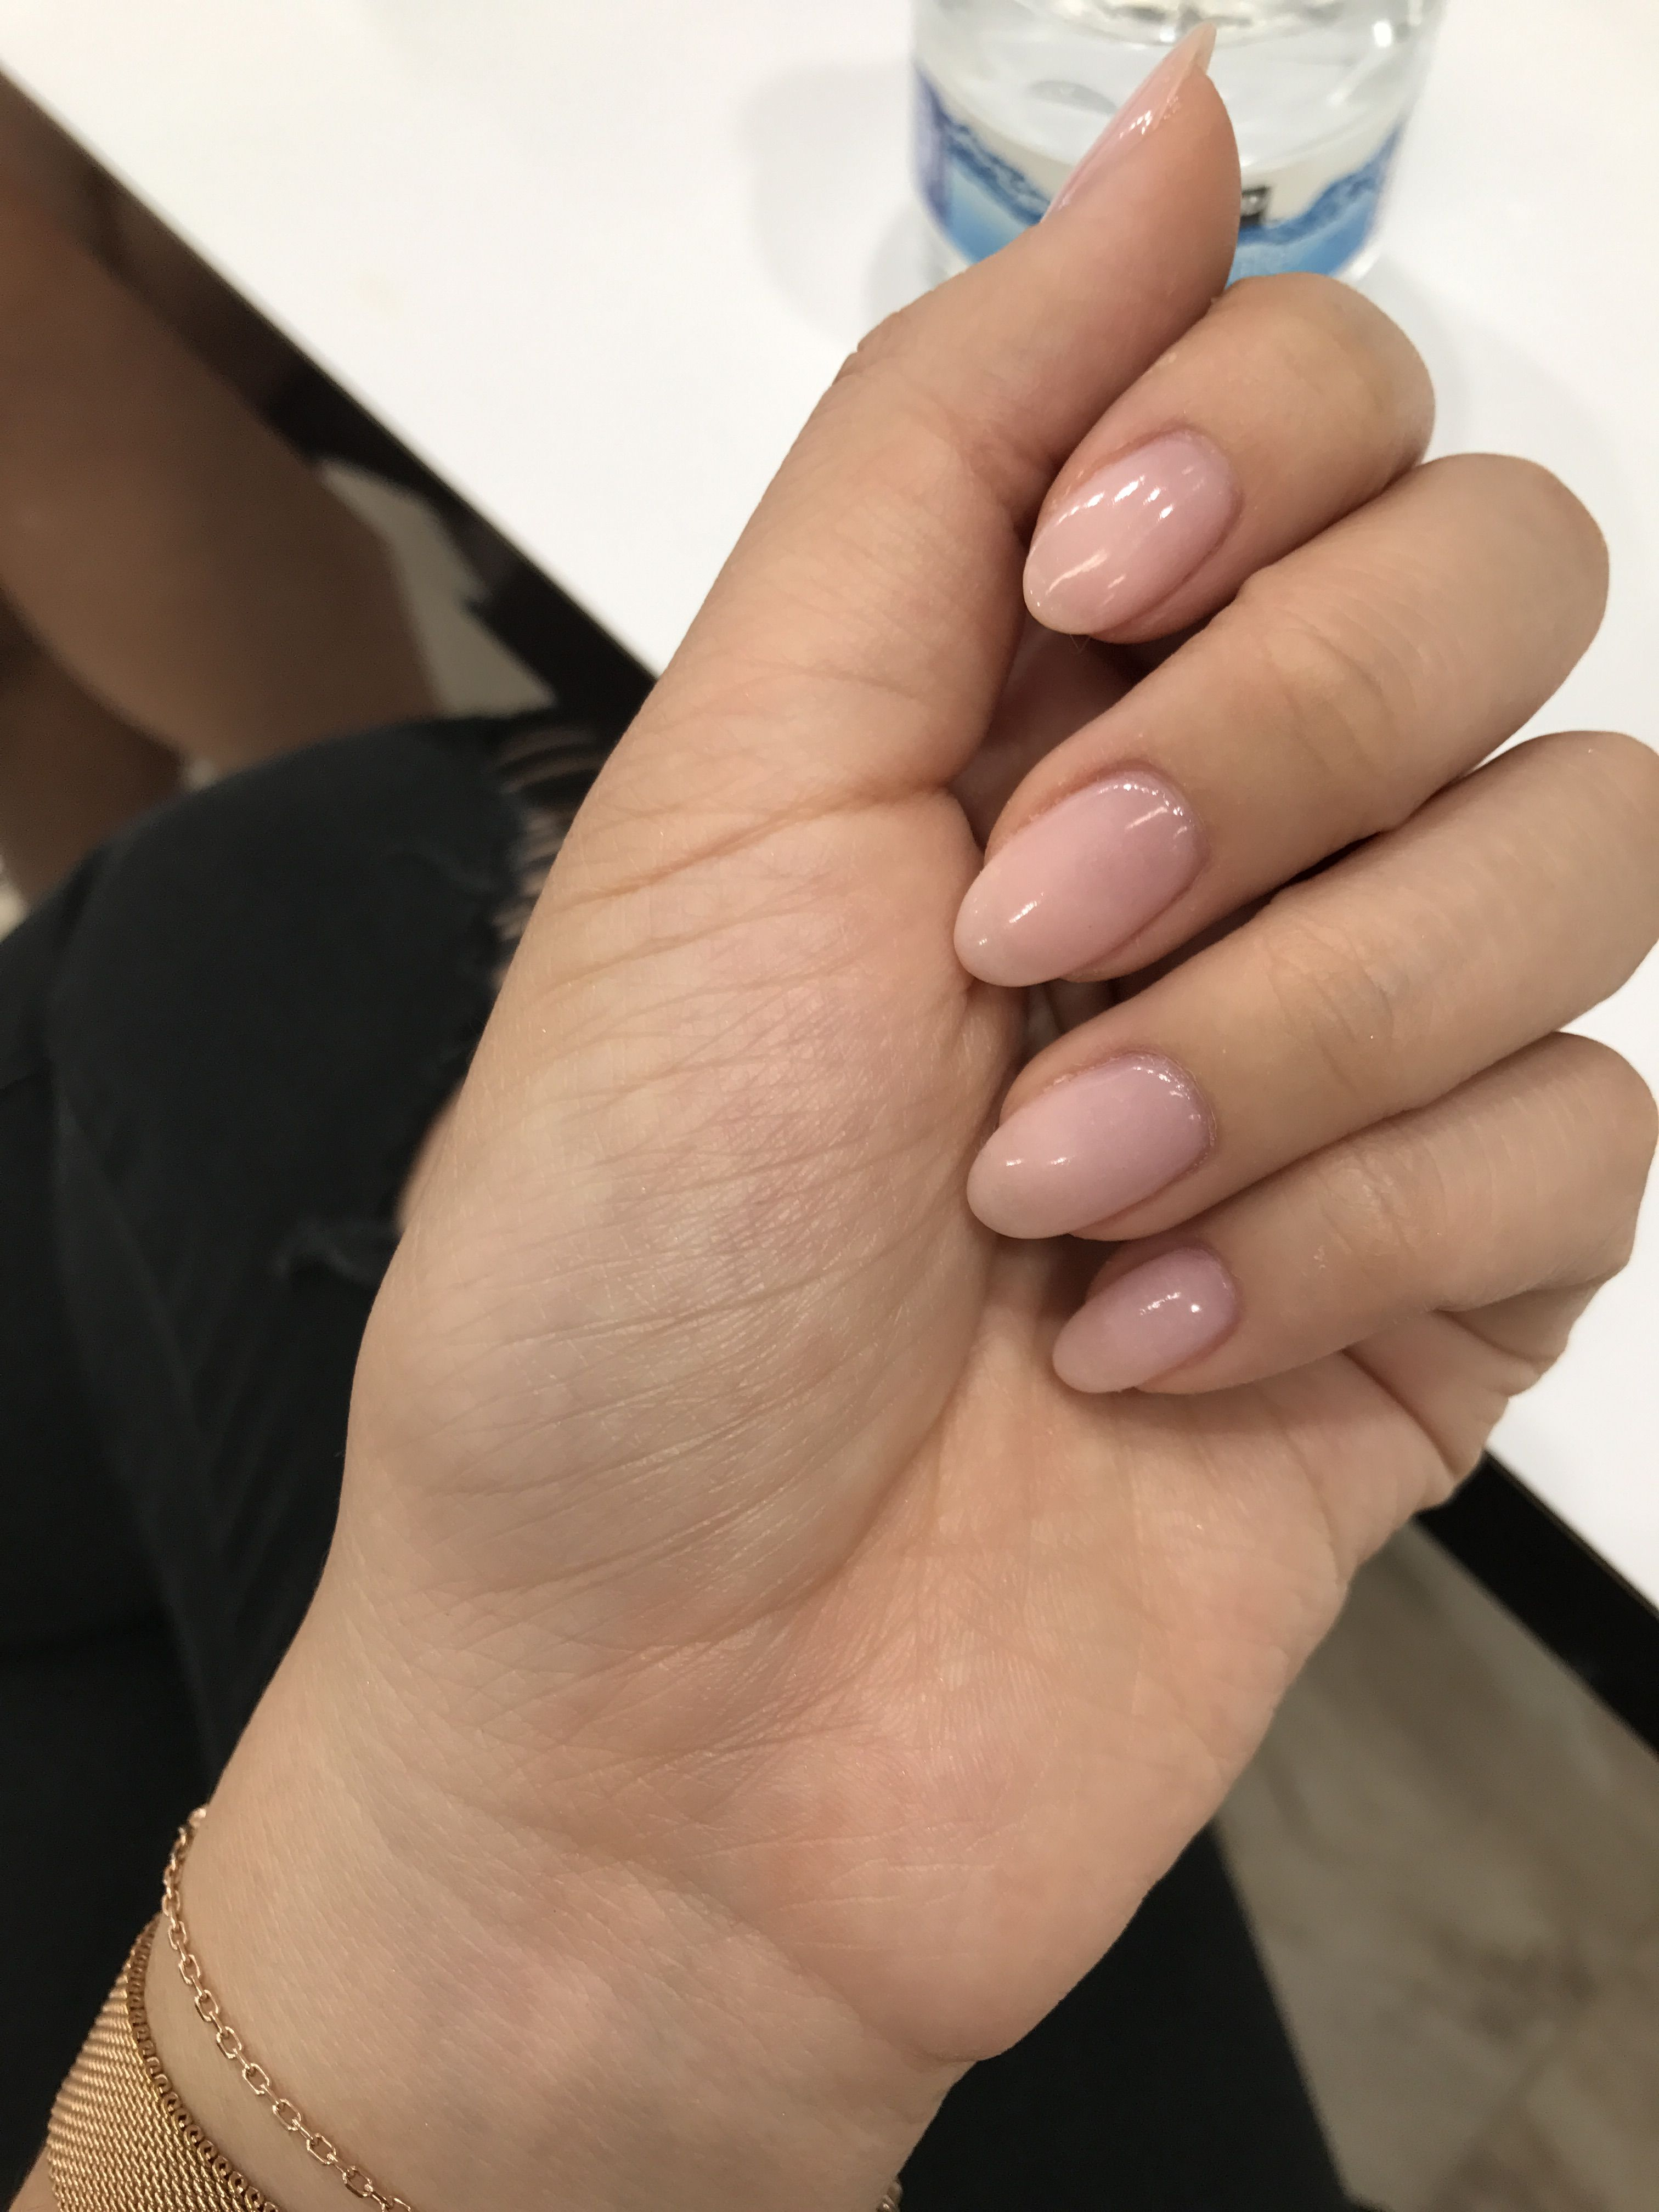 Natural Nails Pink Aeslee98 Rounded Acrylic Nails Pink Nails Natural Nails